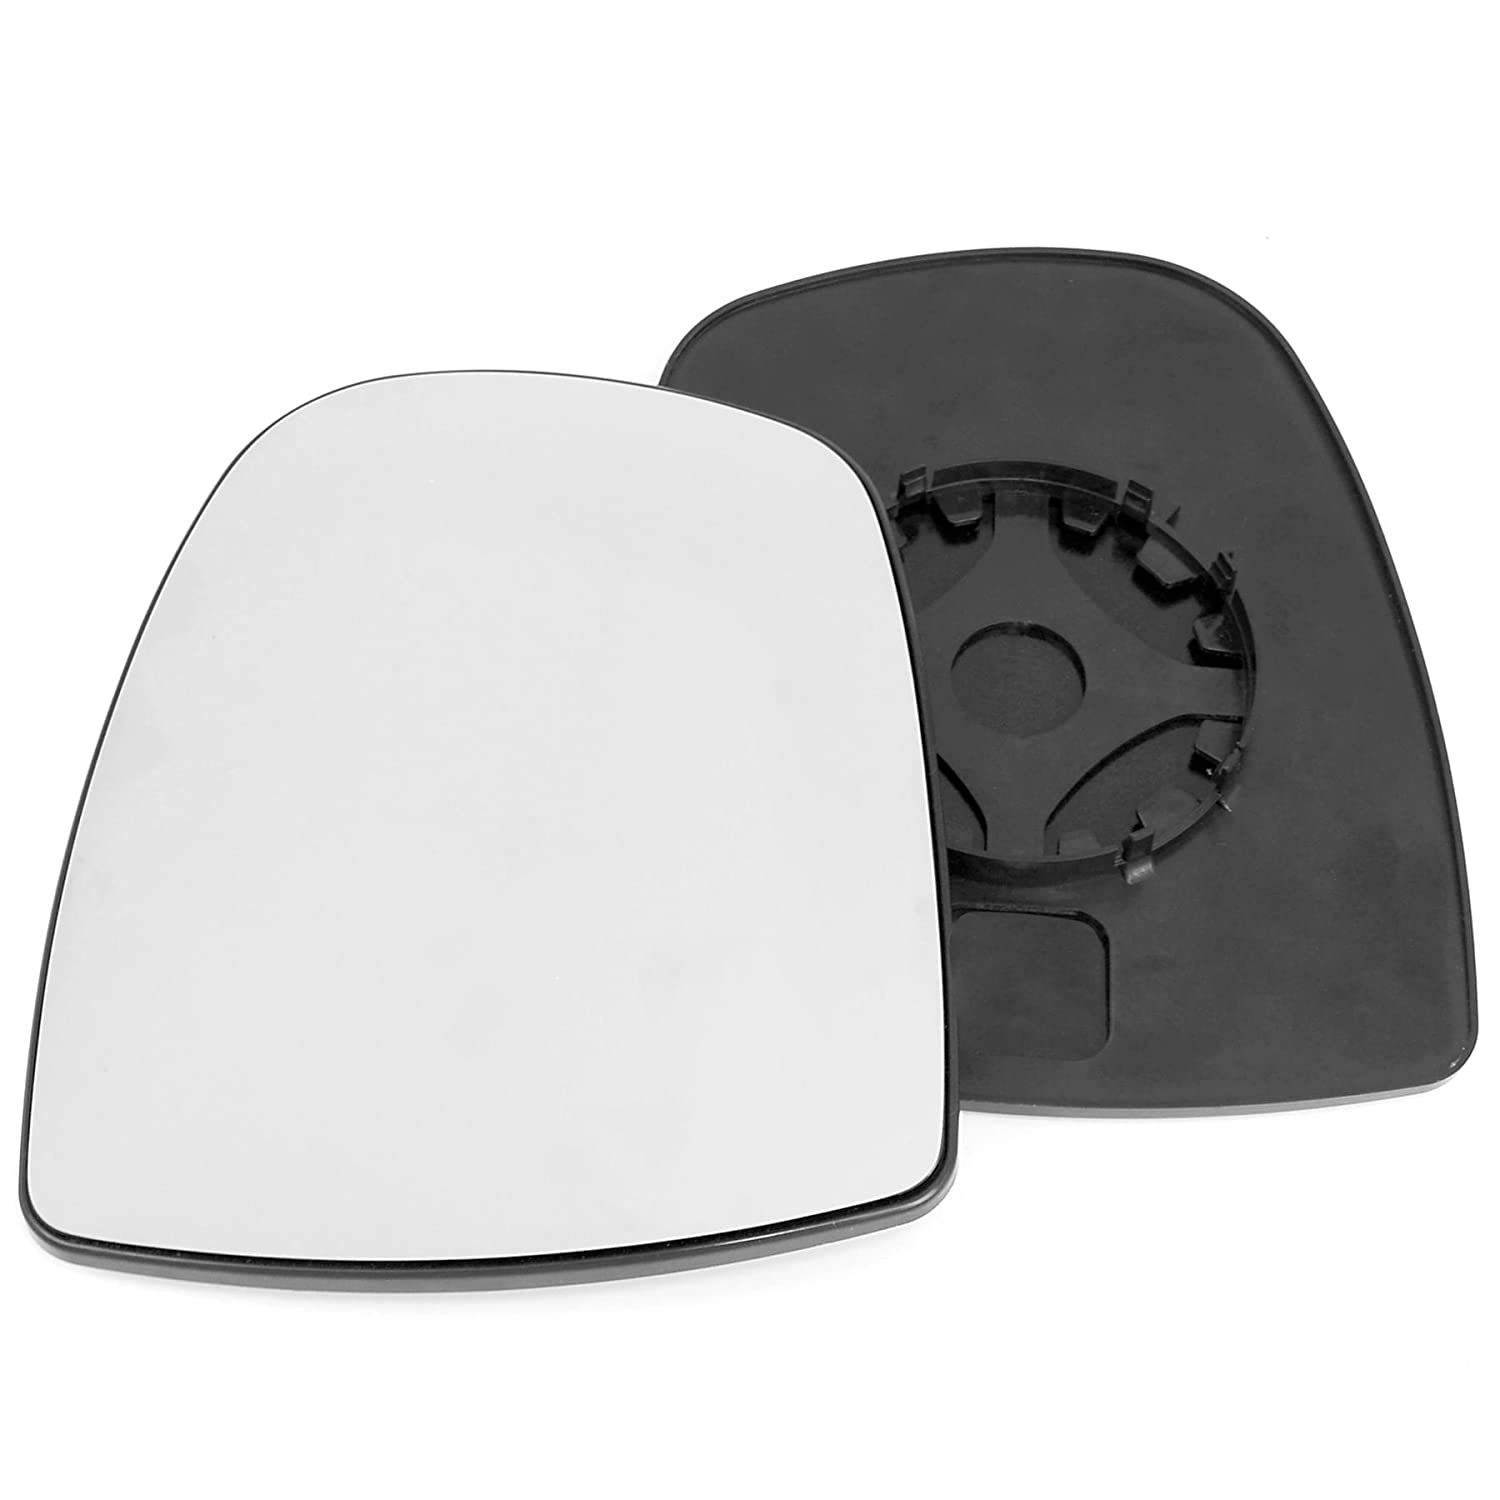 Passenger left hand side wing door Silver mirror glass with backing plate #C-SN/L-NNPSR02 [Clip On]